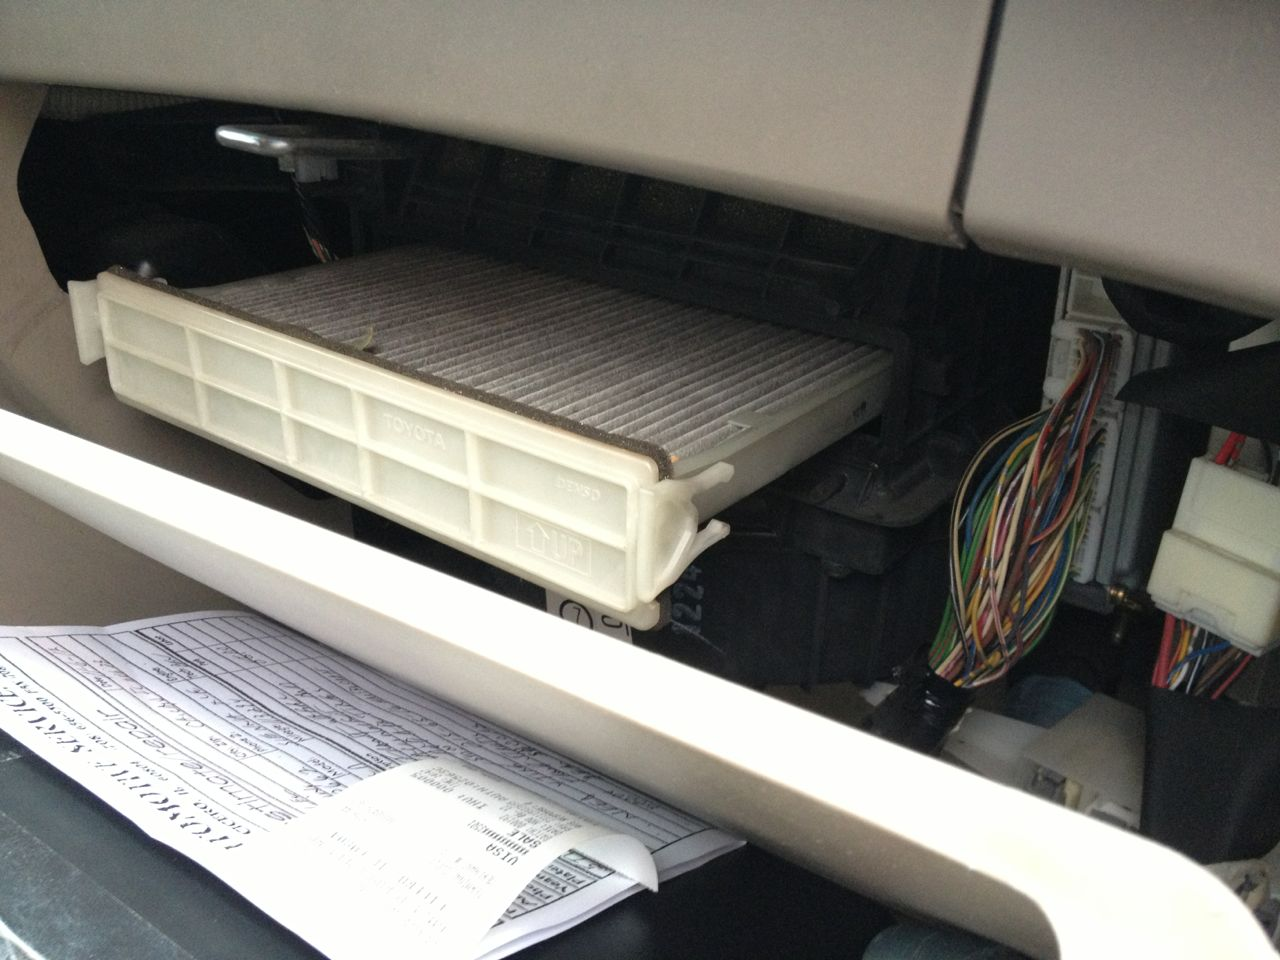 2004 toyota sienna cabin air filter location 2004 get free image about wiring diagram. Black Bedroom Furniture Sets. Home Design Ideas